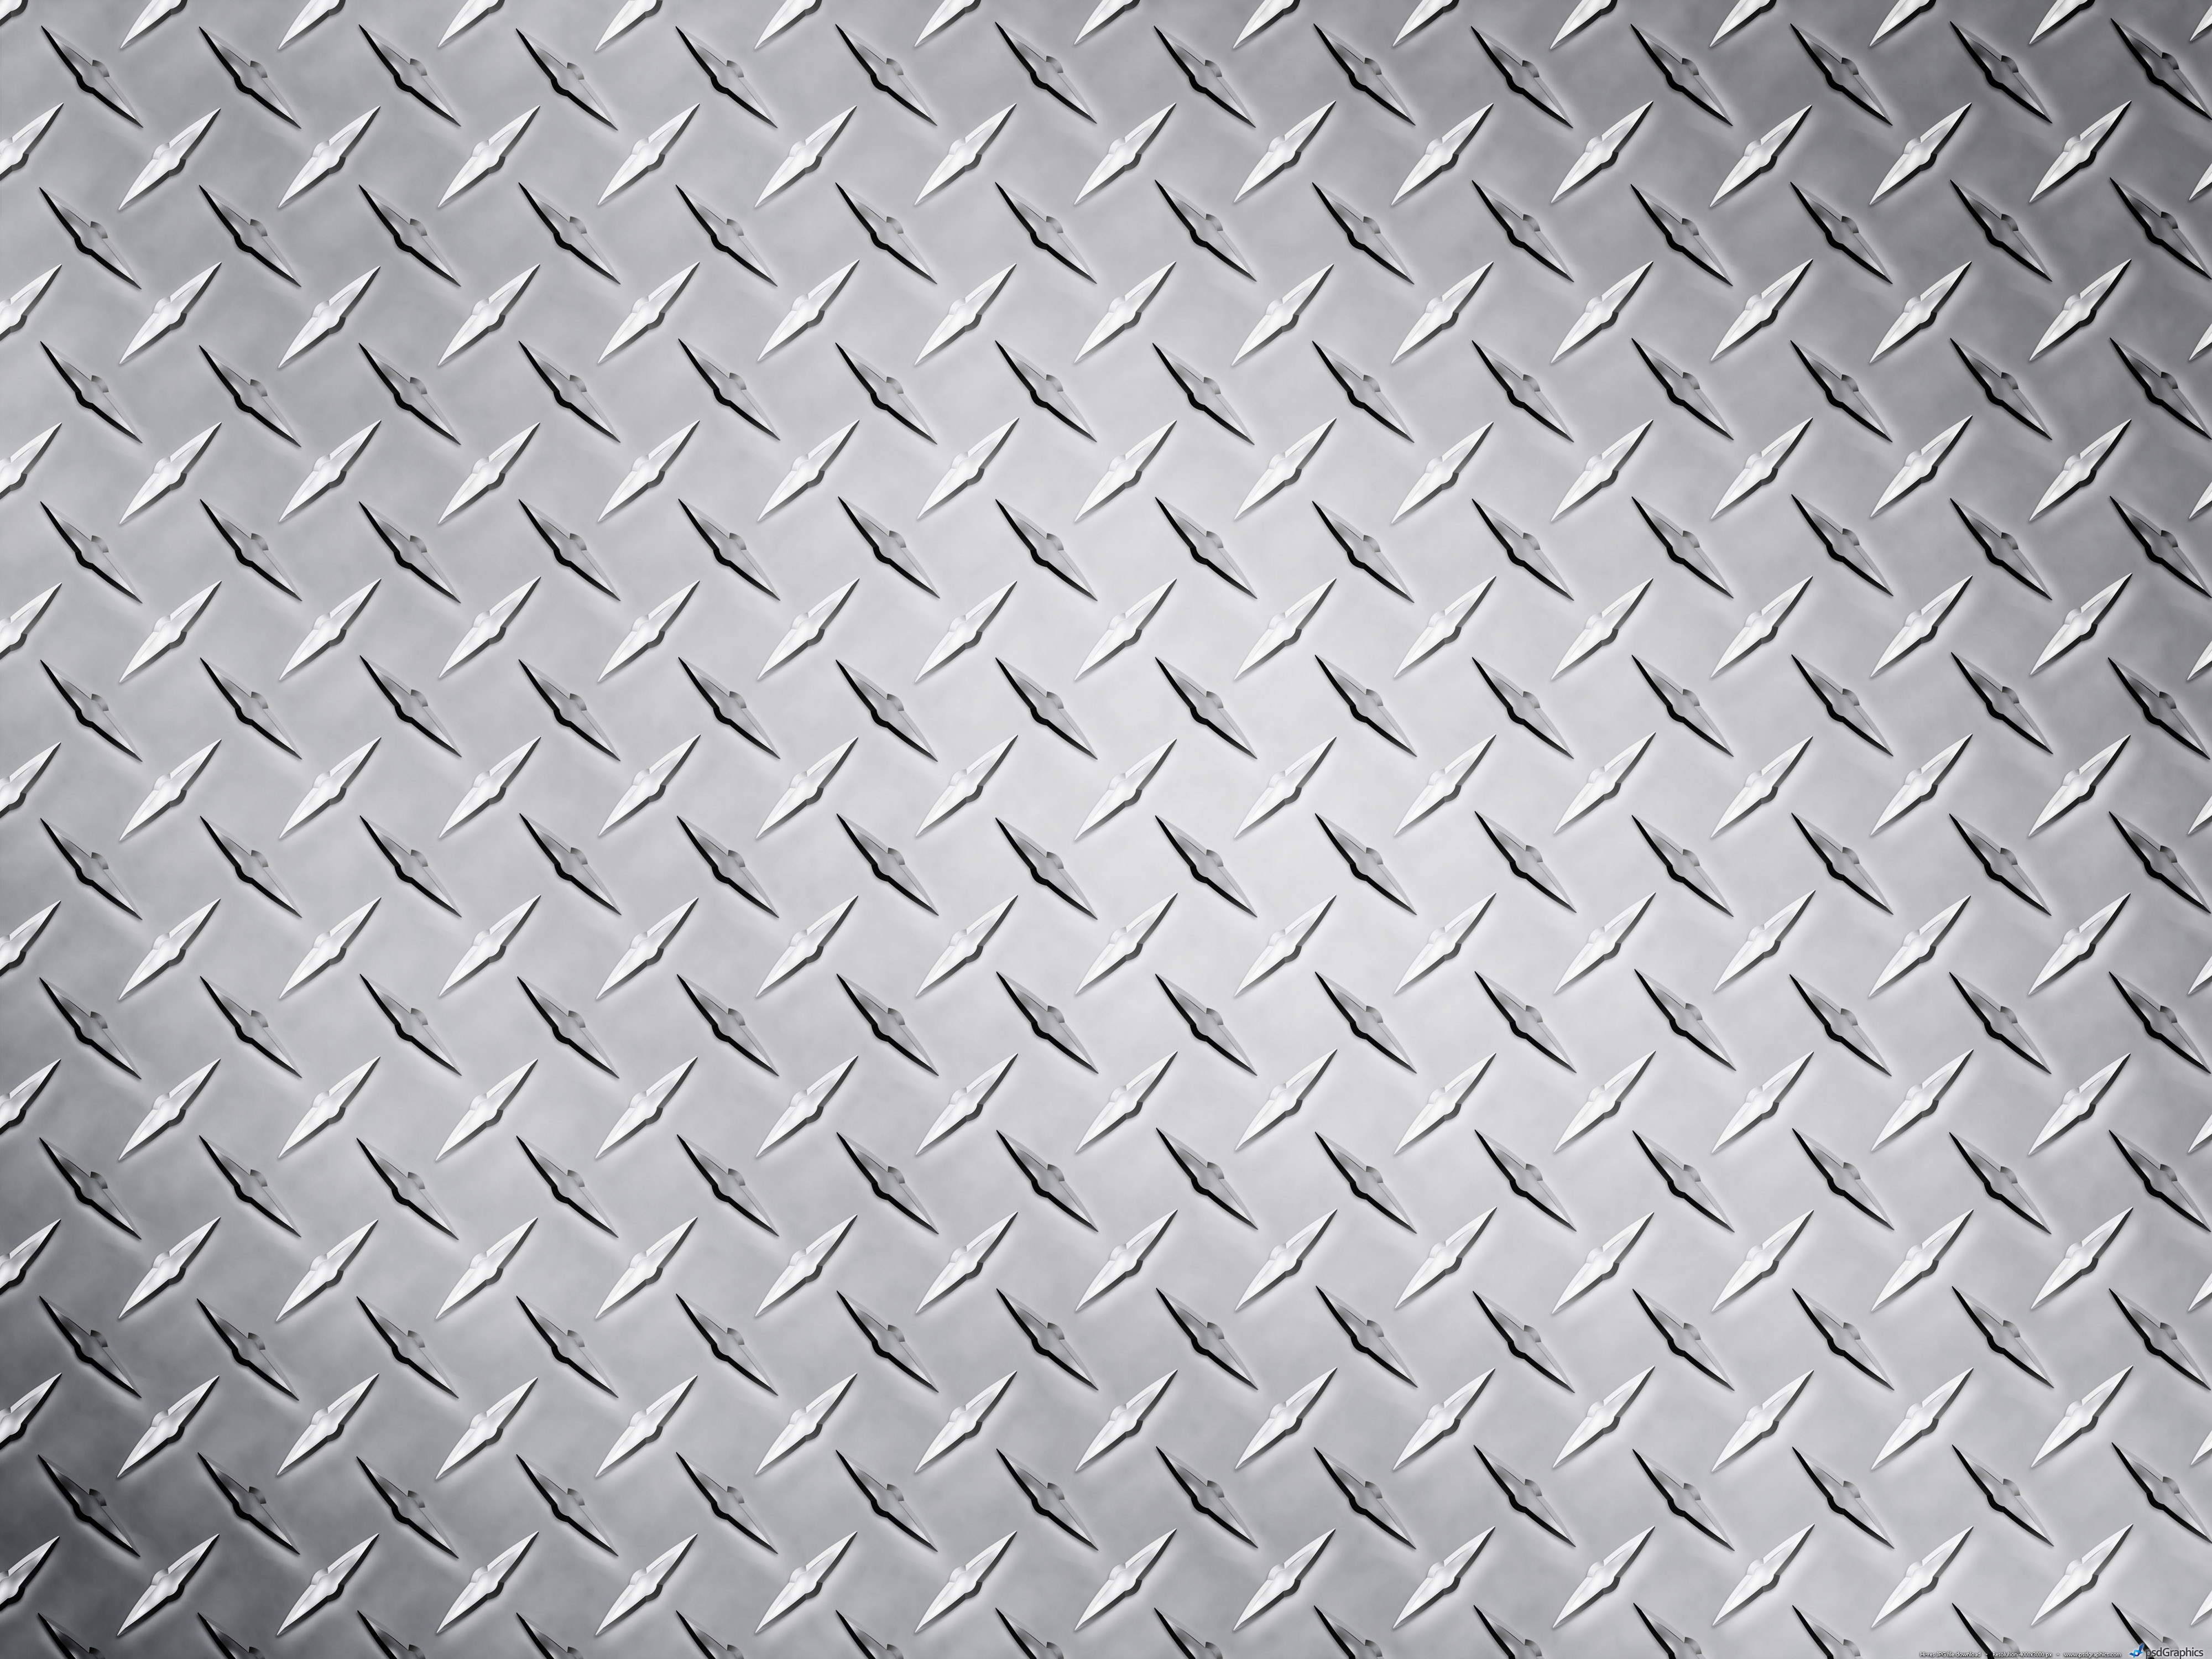 1000+ images about Textures on Pinterest.